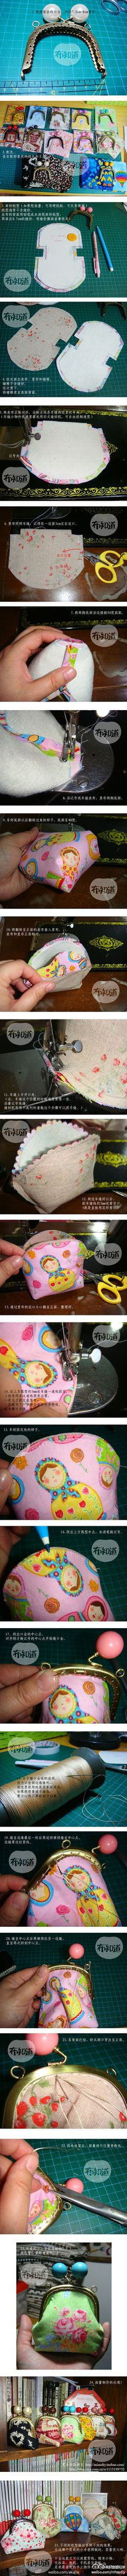 Coin Purse Tutorial - now I just need to figure out the dimensions Sewing Hacks, Sewing Tutorials, Sewing Crafts, Sewing Projects, Purse Patterns, Sewing Patterns, Diy Coin Purse, Coin Purses, Coin Purse Tutorial